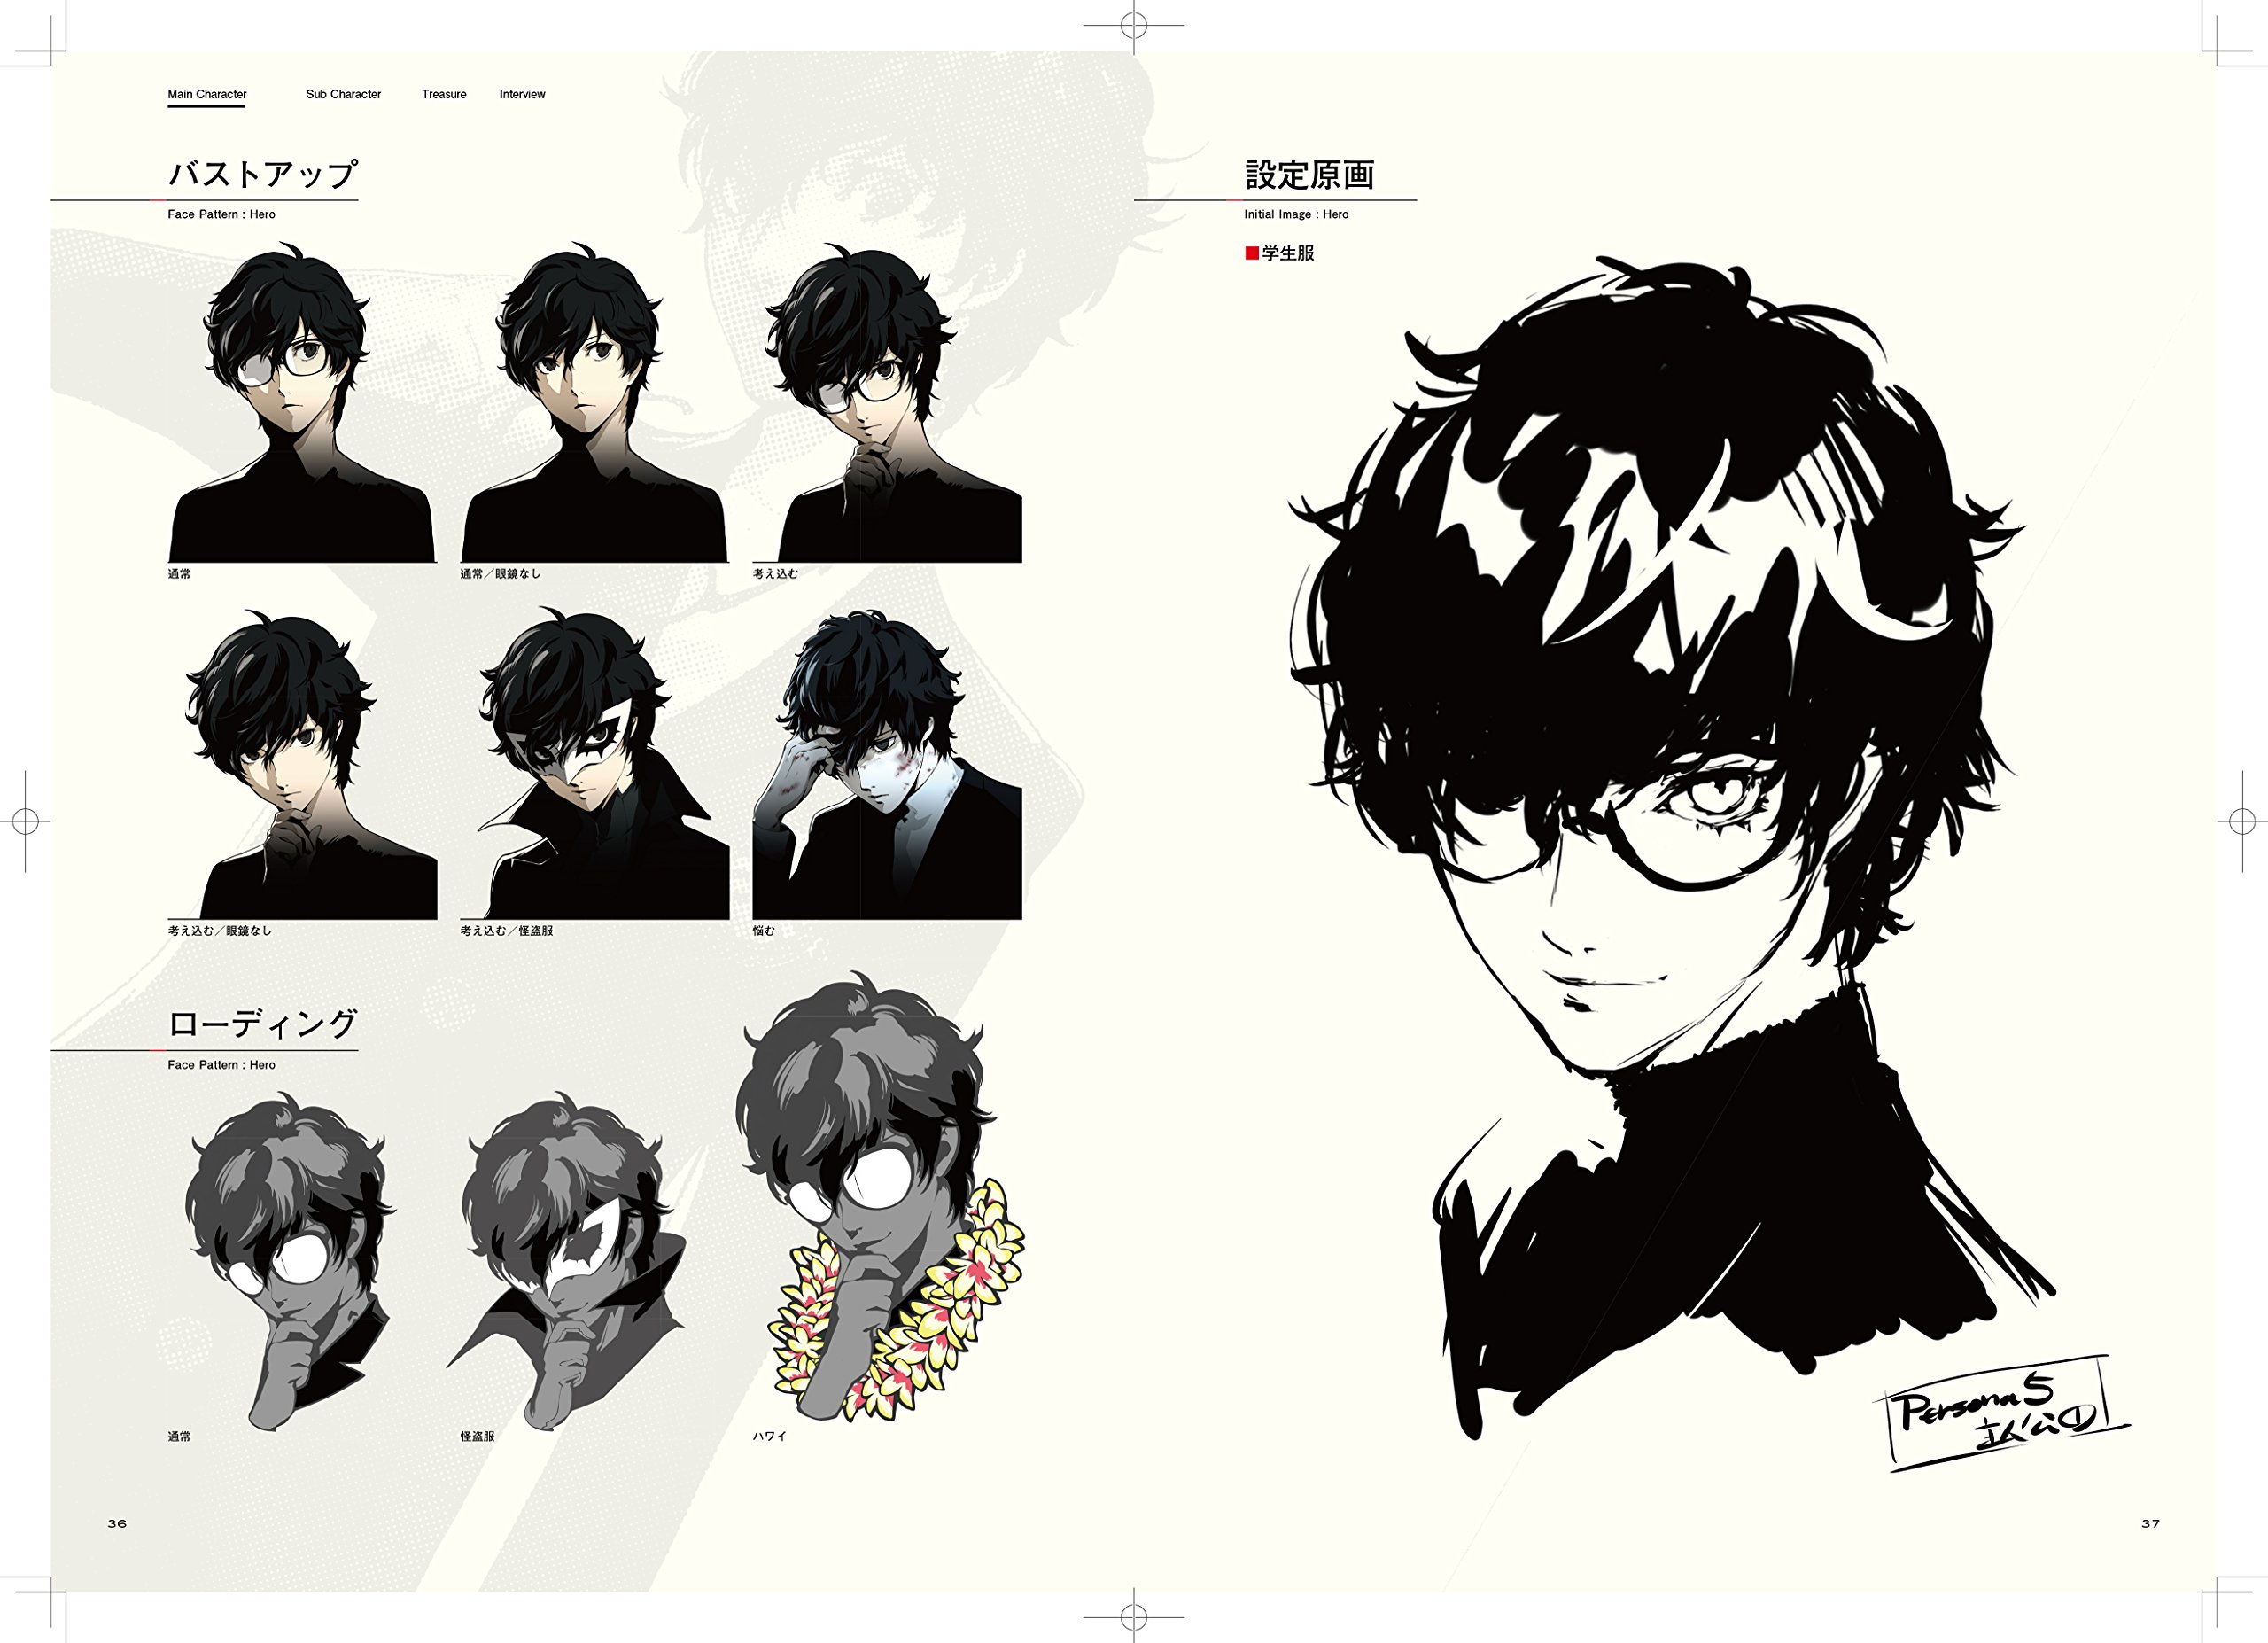 Persona 5 P5 Official Design Works Japan PS4 PS3 GAME ART BOOK